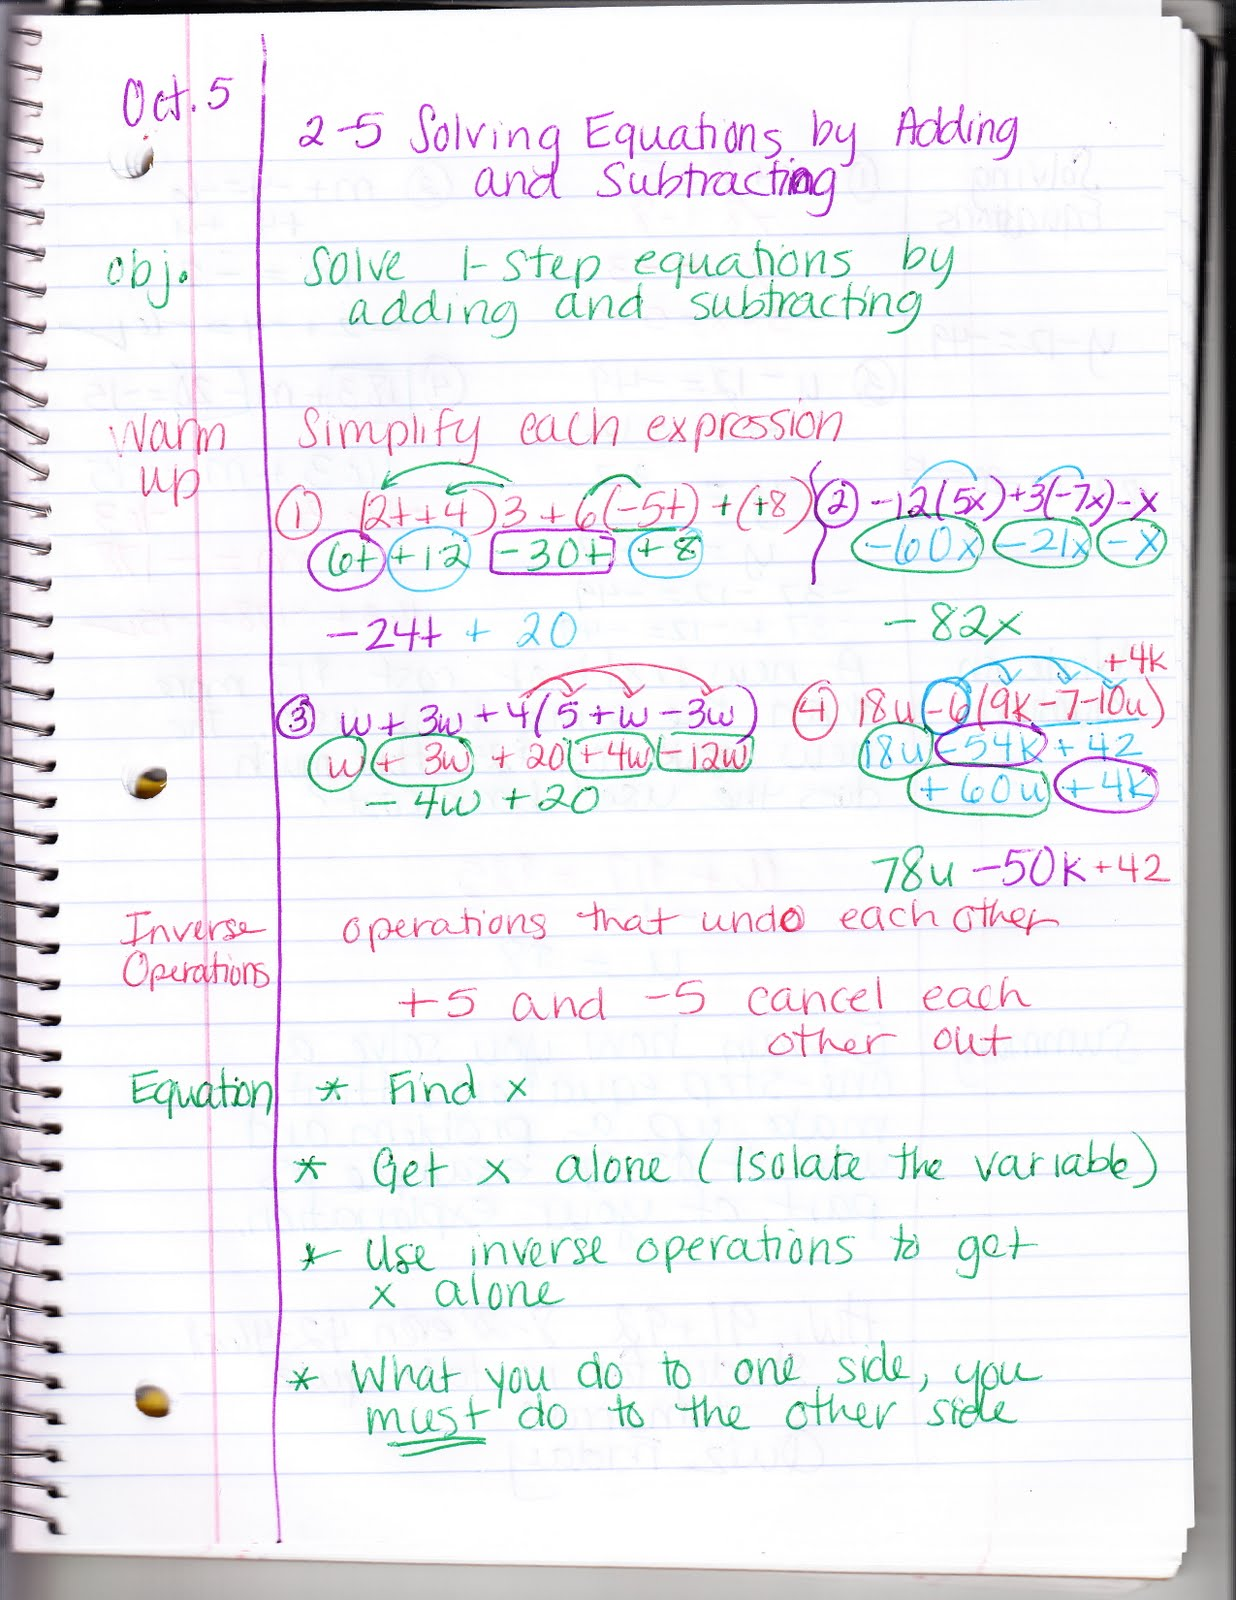 Ms. Jean's Classroom Blog: 2-5 Solving Equations by Adding or ...